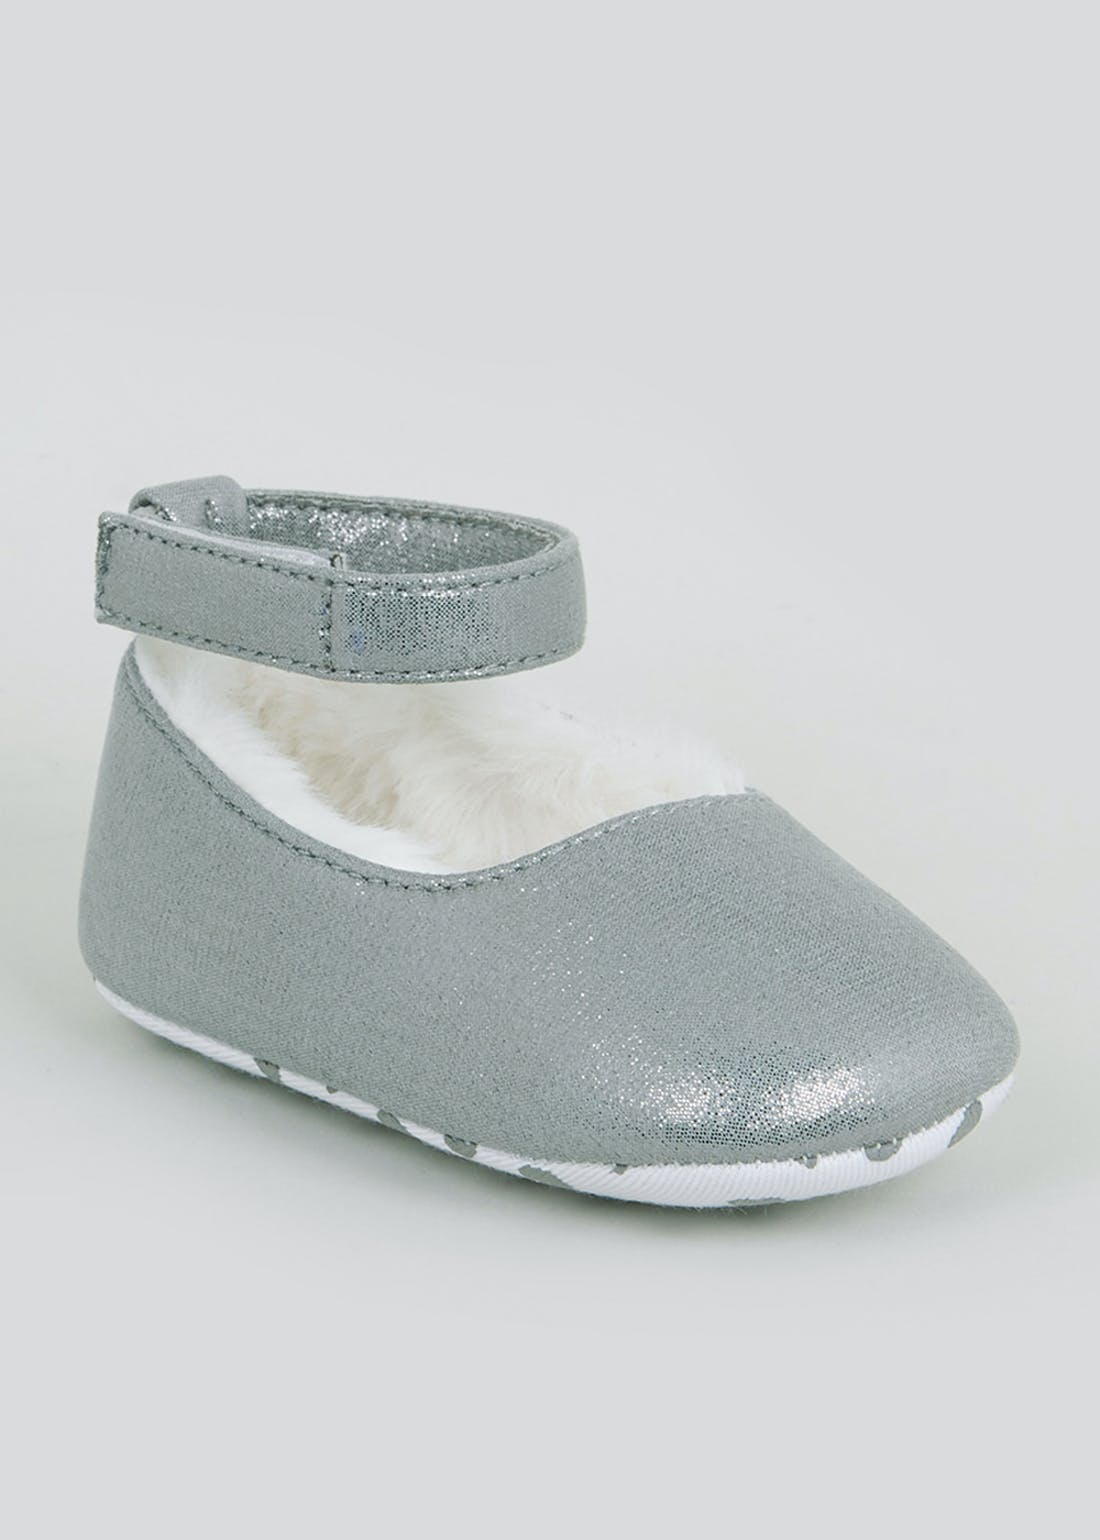 Girls Grey Soft Sole Faux Fur Lined Baby Shoes (Newborn-18mths)